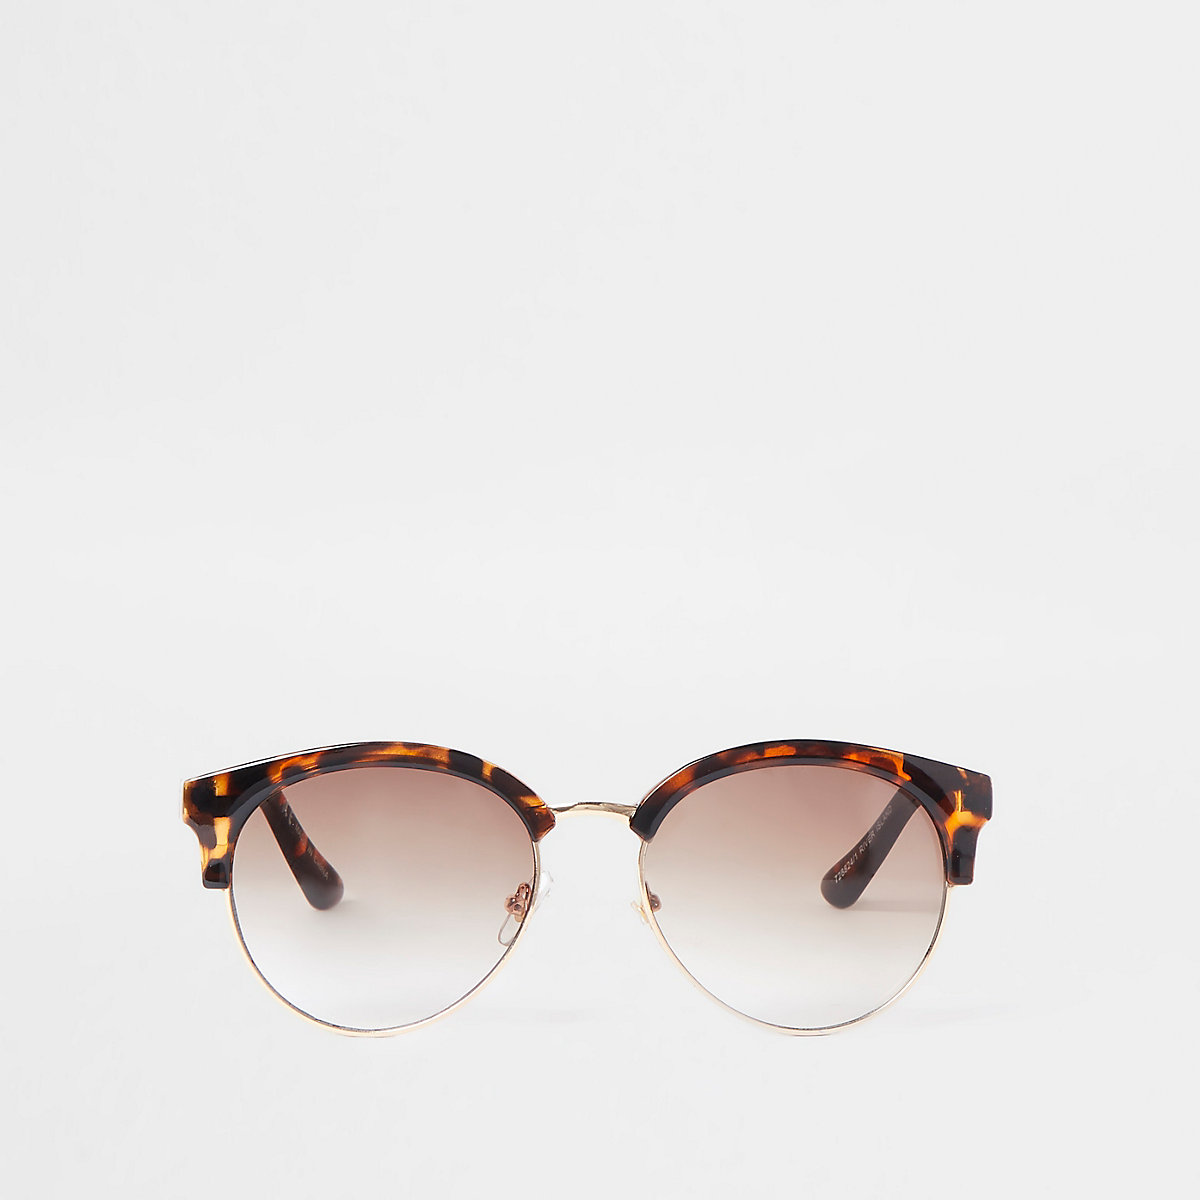 Brown tortoiseshell chain trim sunglasses